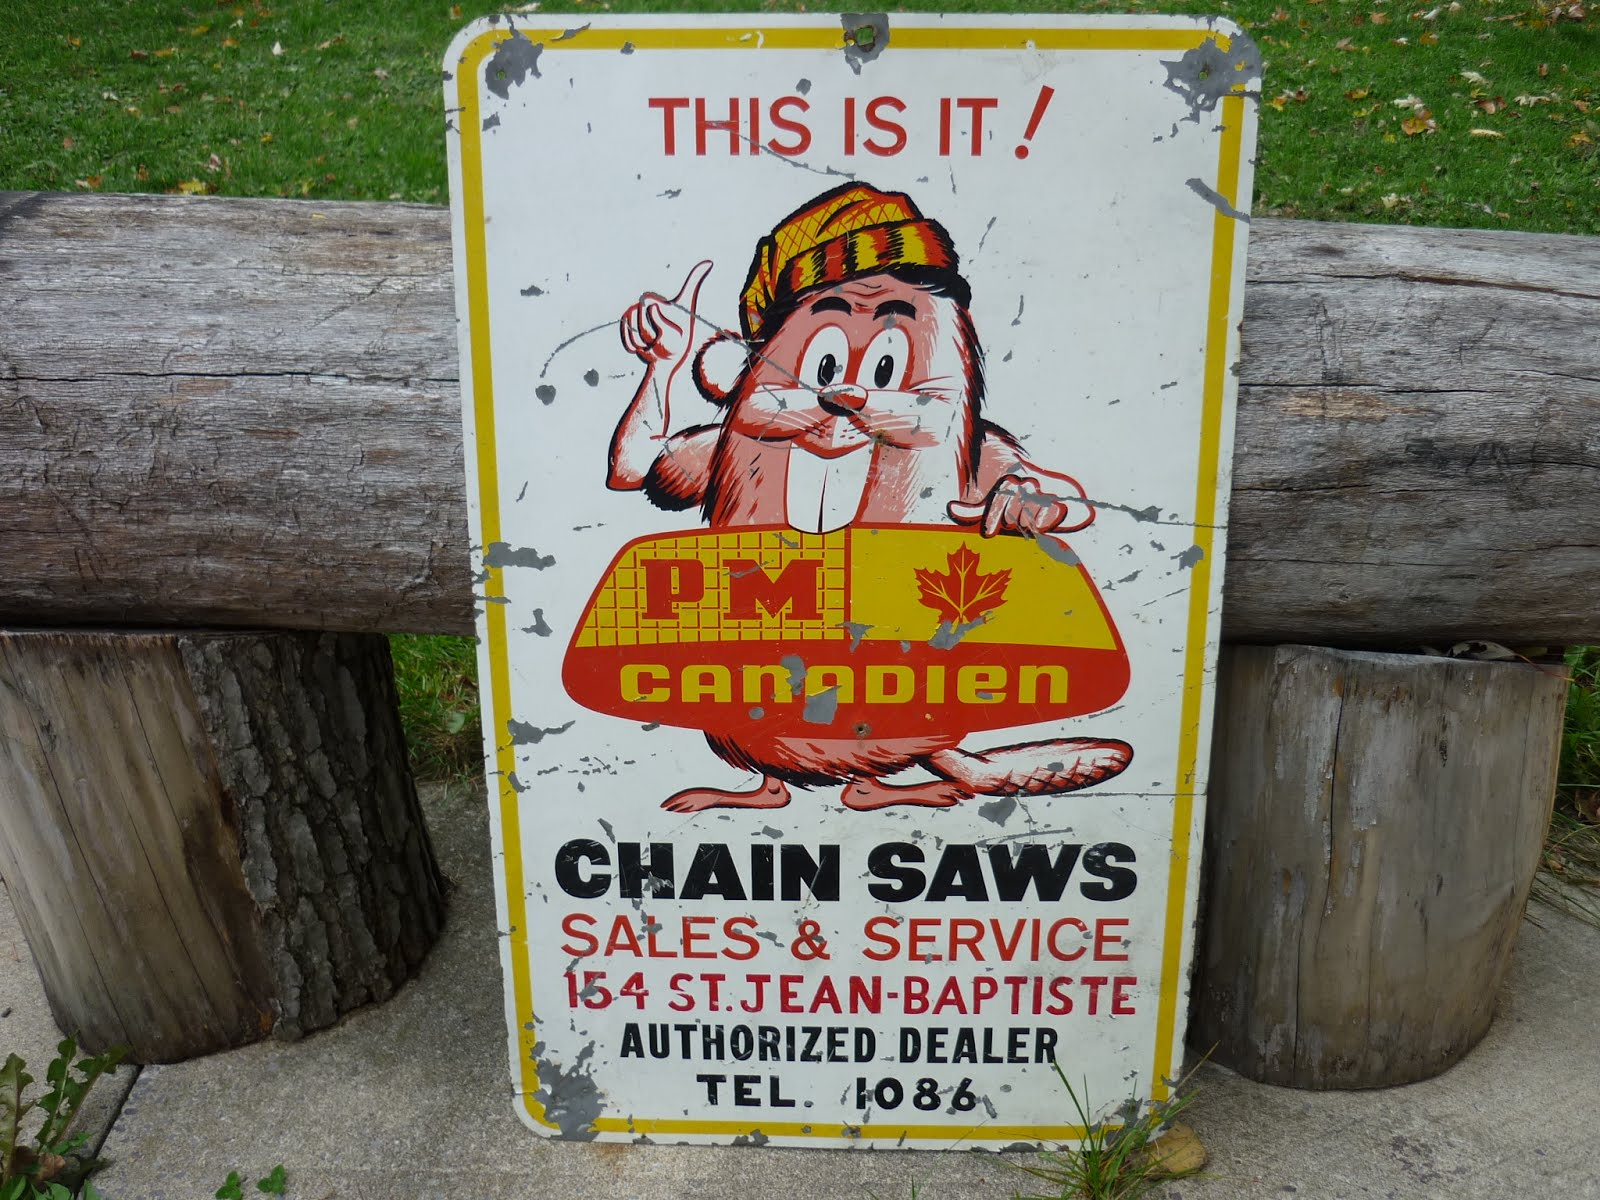 VINTAGE CHAINSAW COLLECTION: CHAINSAW SIGNS COLLECTION